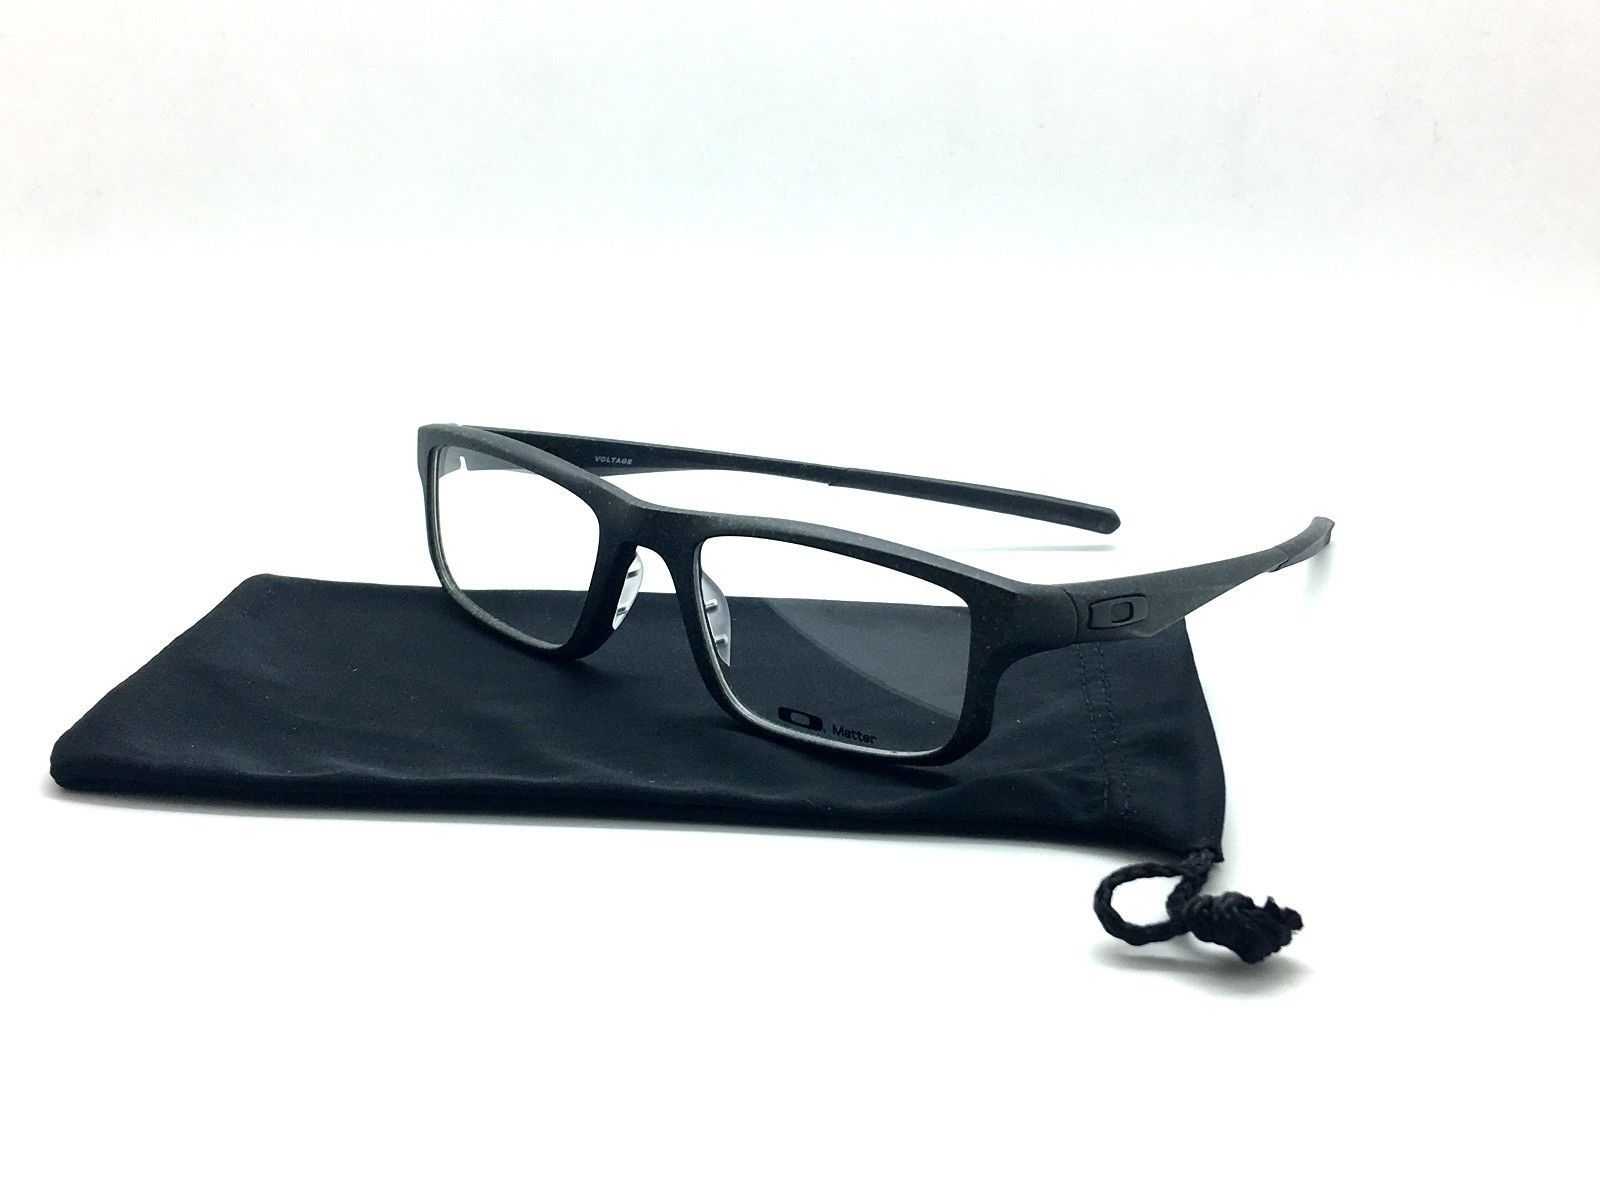 ea15cbe6f1 Oakley Matte Black Eyeglasses Voltage OX8049-0553 Space Mix Optical Frame  53mm